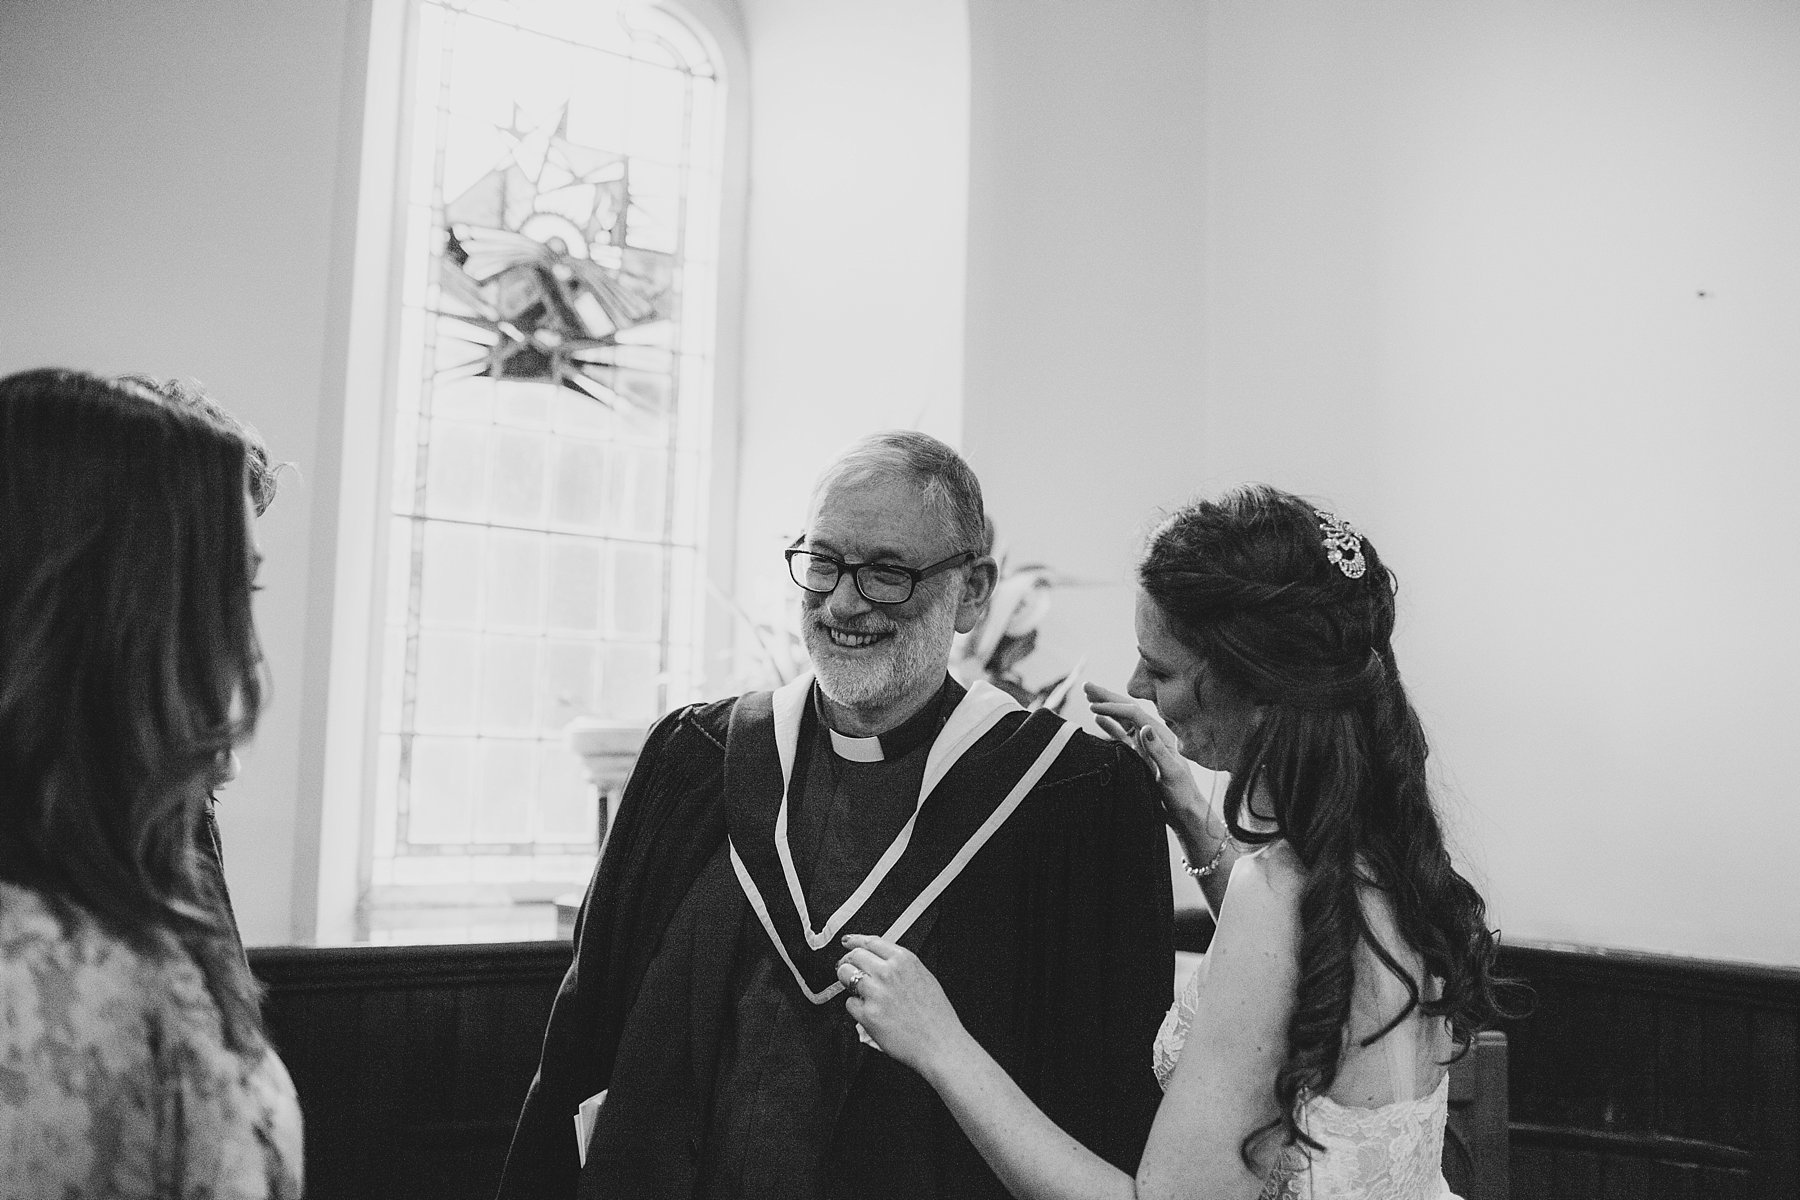 hornhead_donegak_elopement_weddings_0038